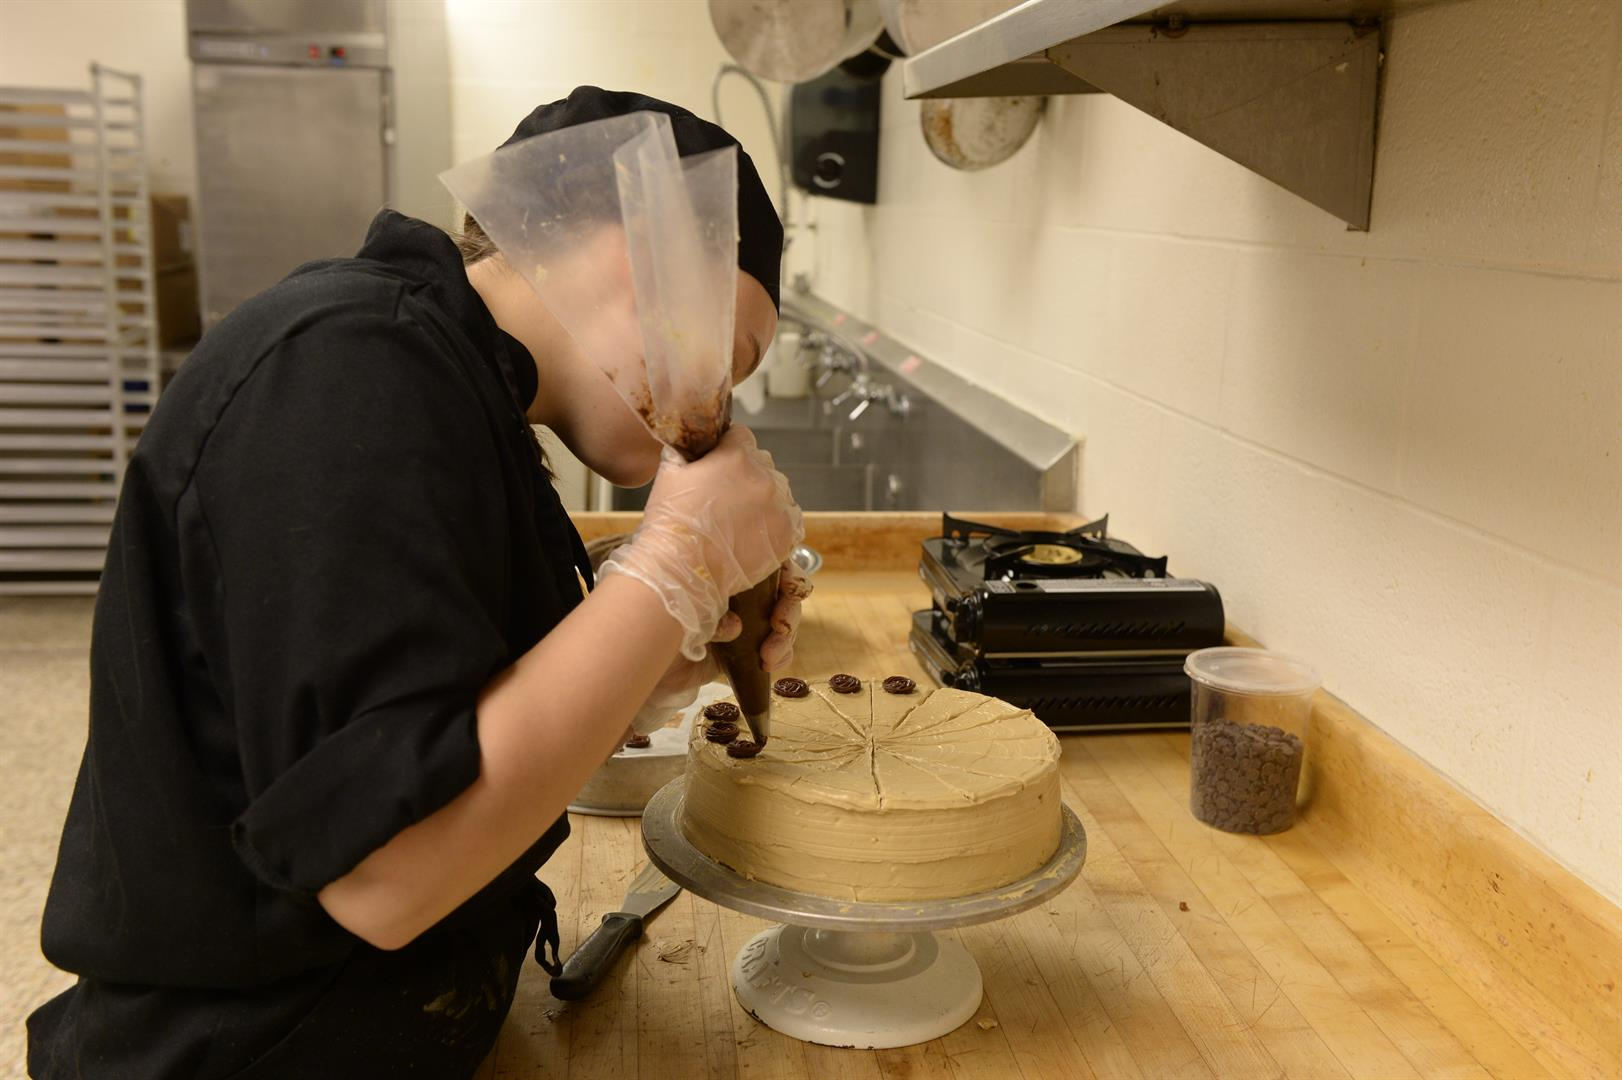 A culinary art student pipes a cake.